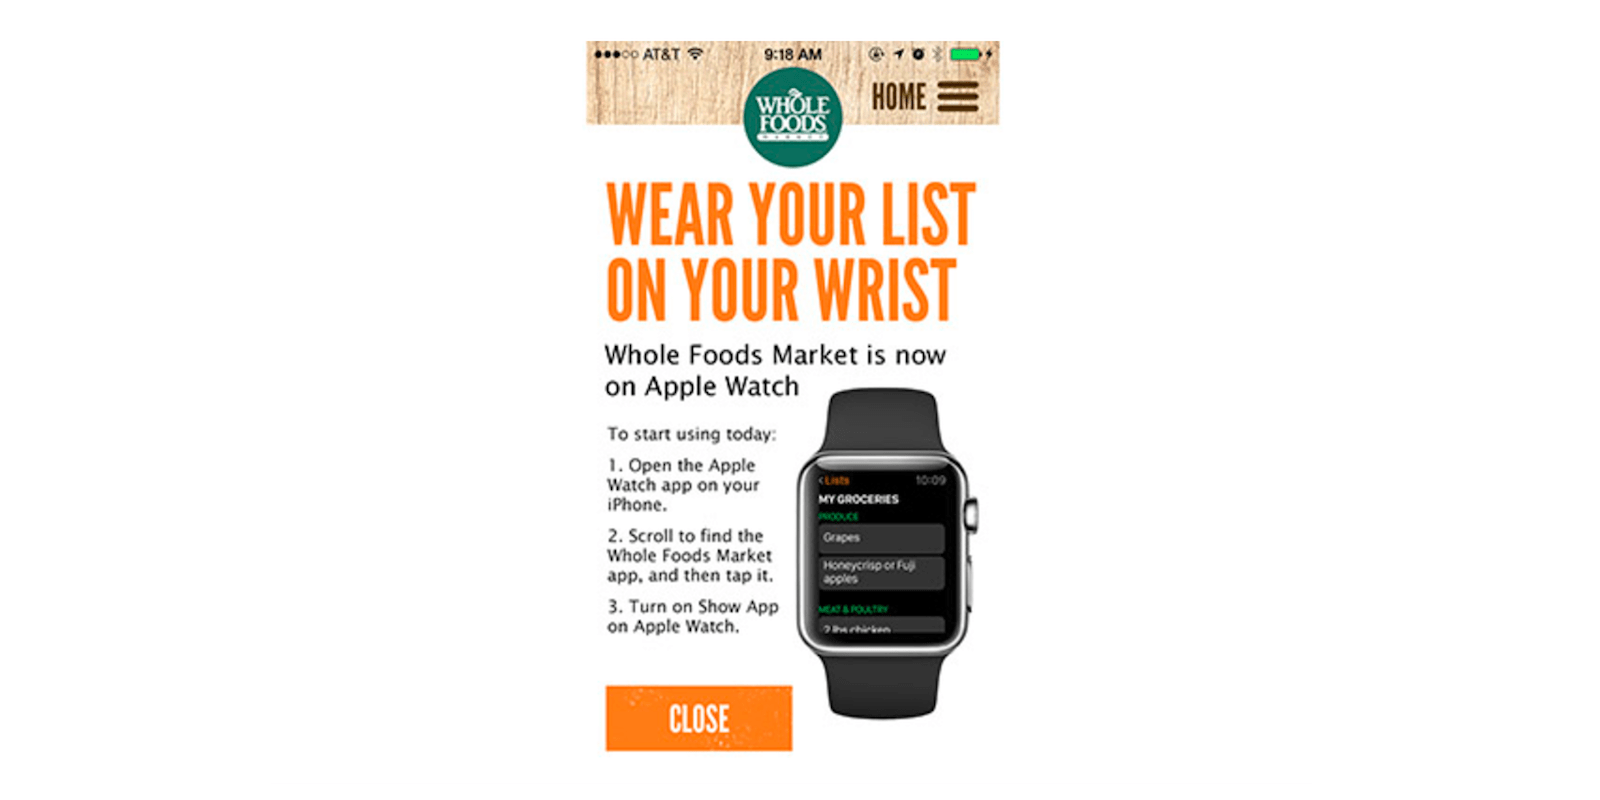 watchOS apps continue to disappear as Whole Foods says